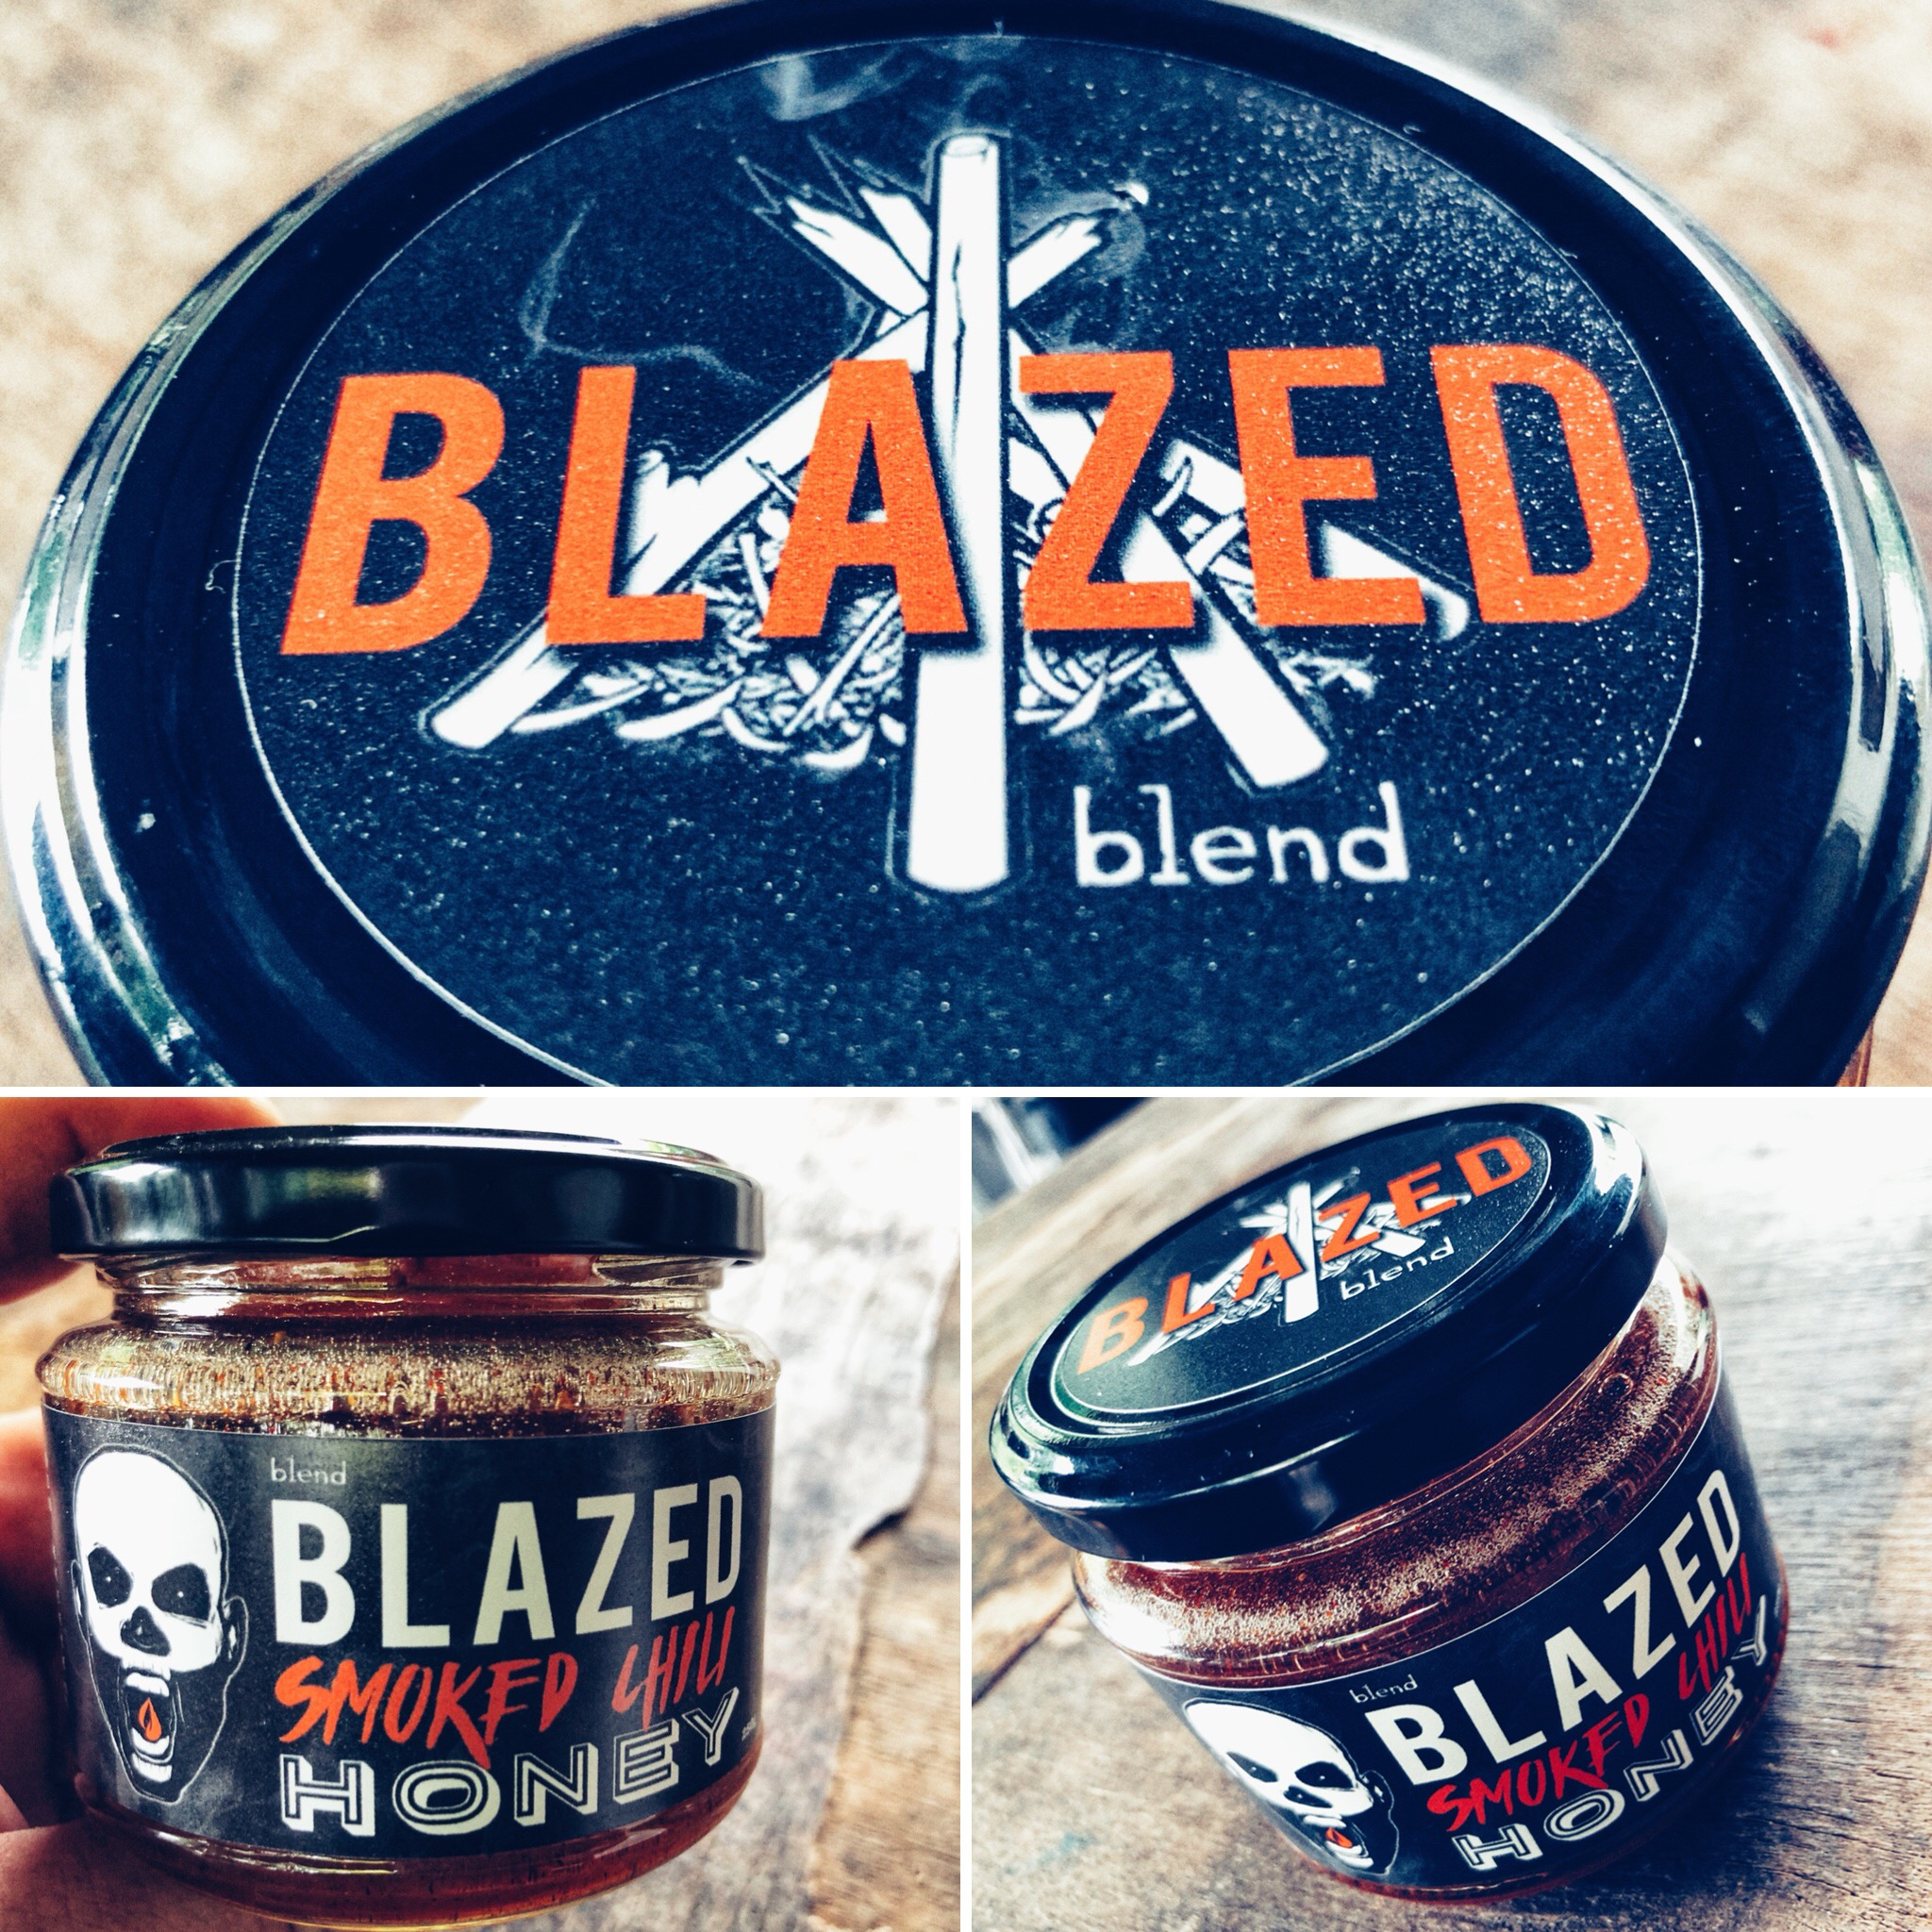 Blend Blazed (Smoked Chili)